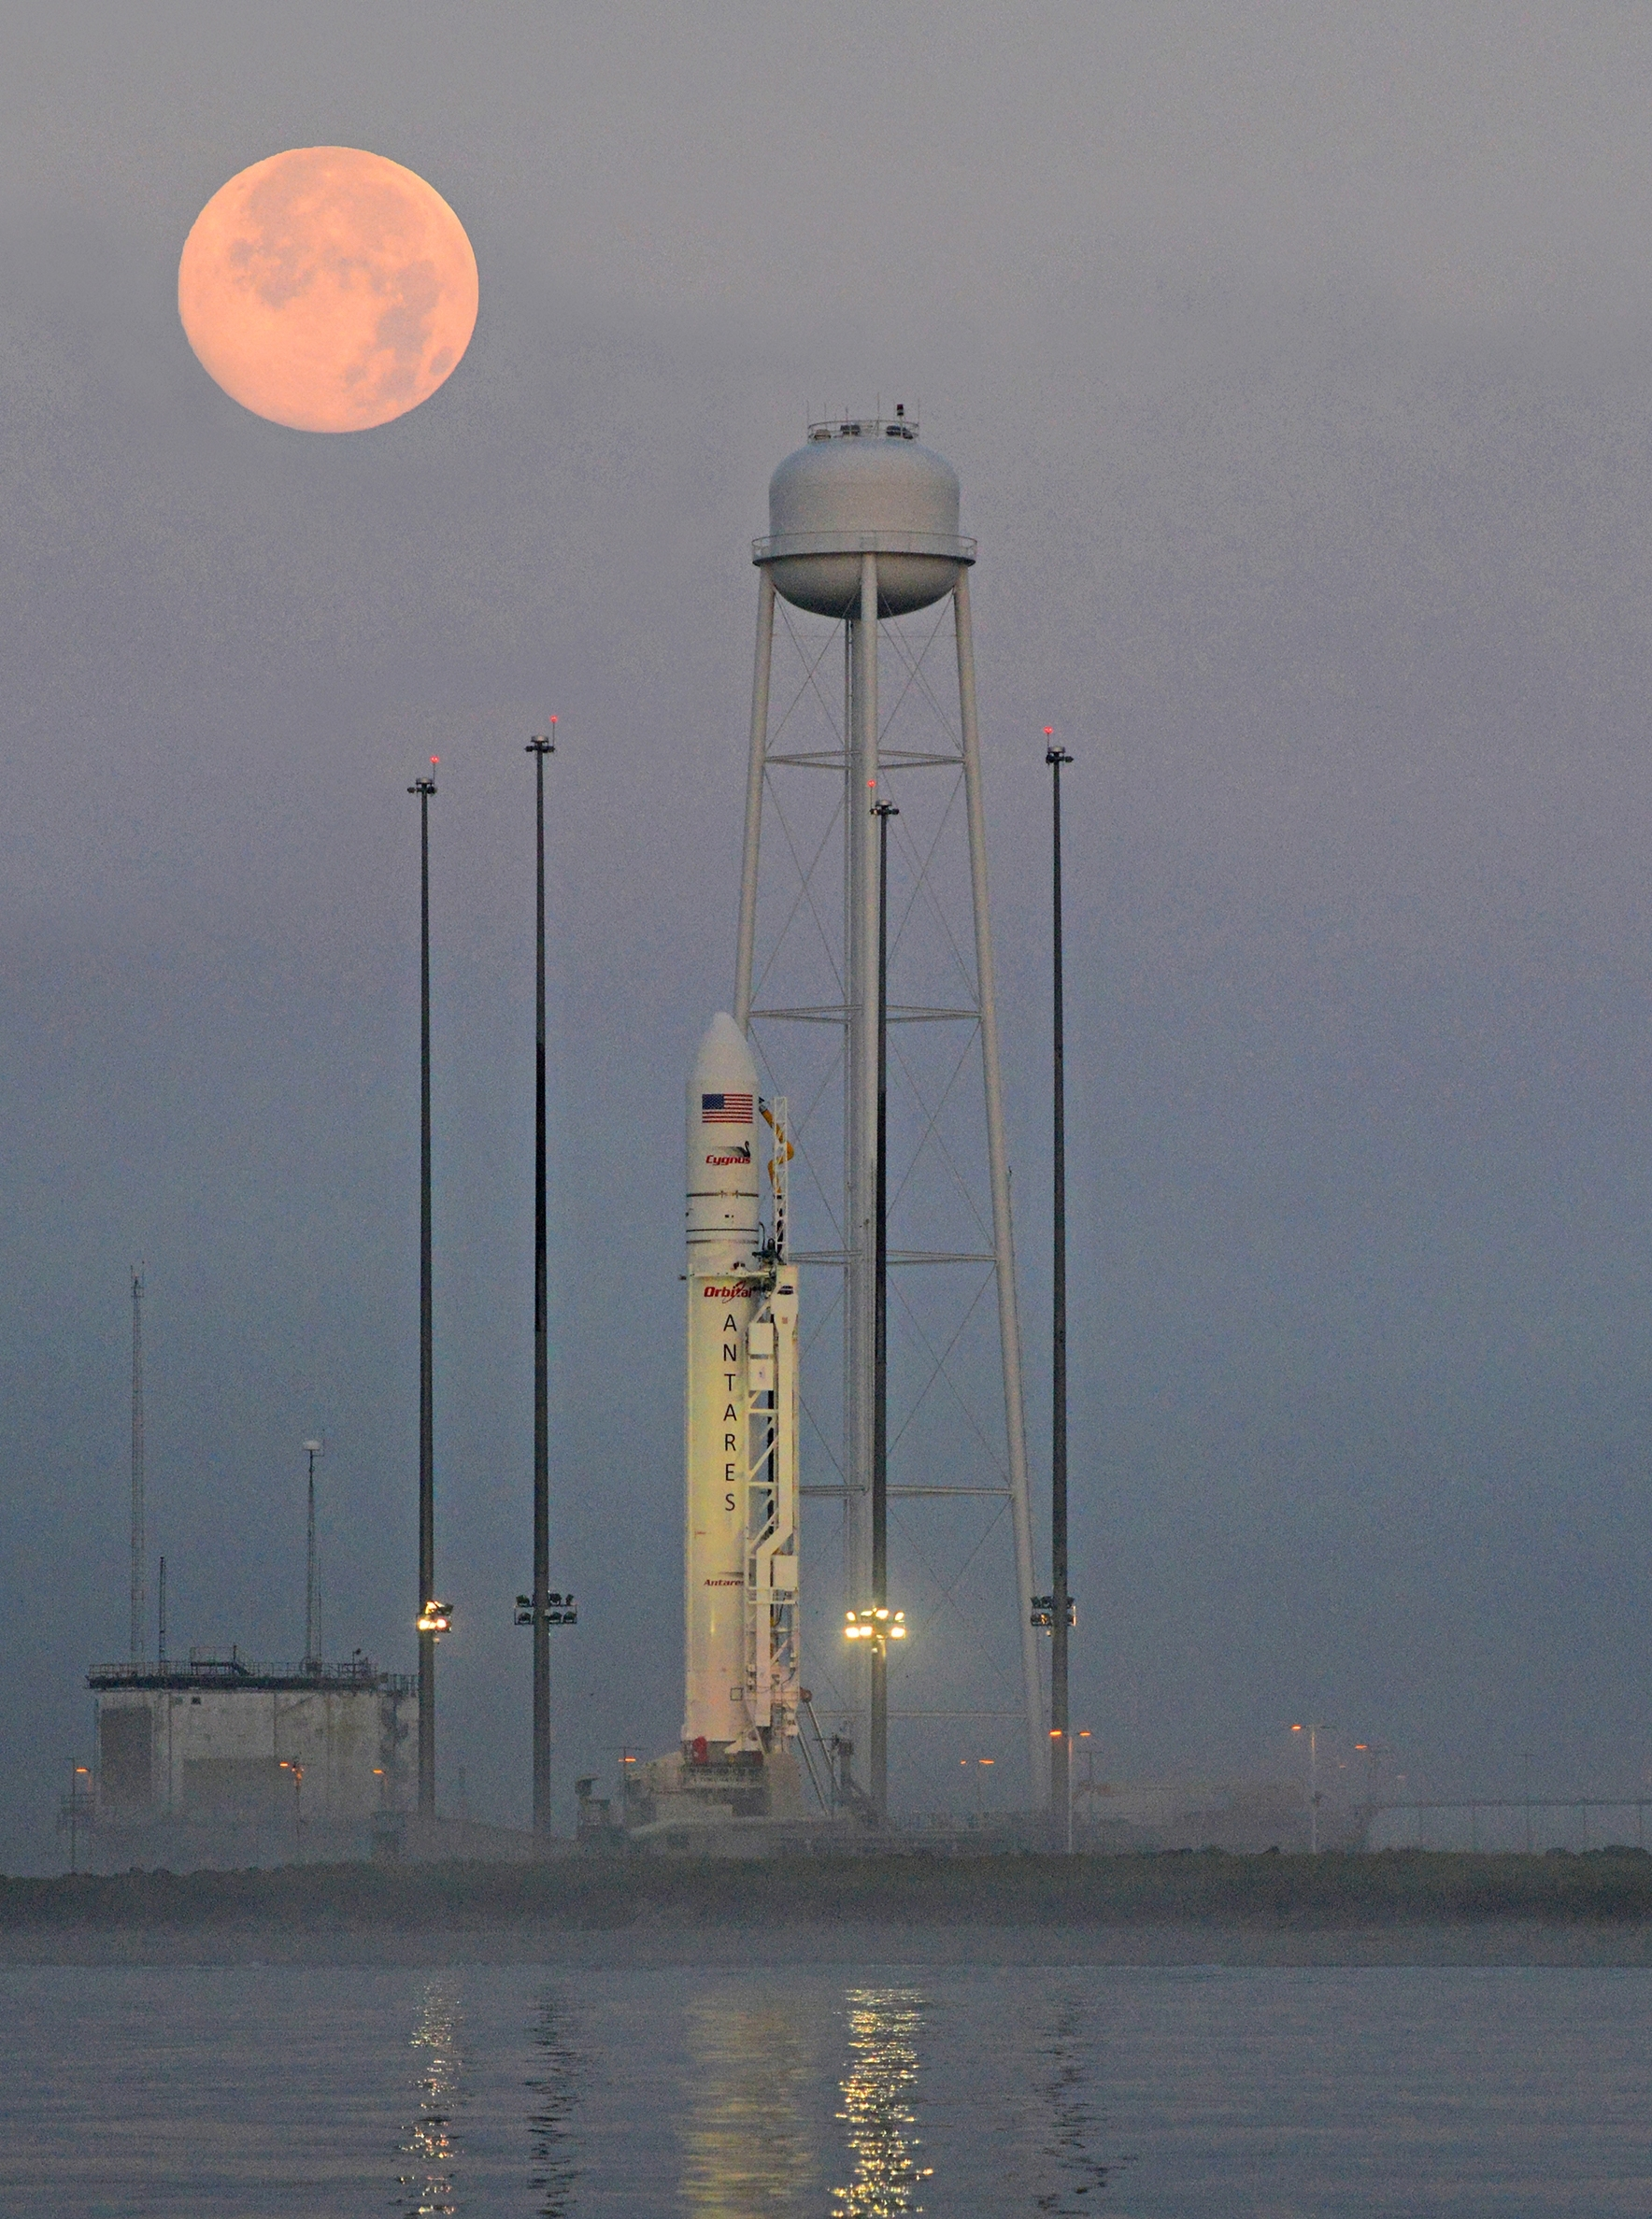 Orbital's Antares rocket on the Mid-Atlantic Regional Spaceport (MARS) Pad 0A at NASA's Wallops Flight Facility, Virginia. Antares is set to launch on Sunday July 13, 2014 carrying the Cygnus spacecraft which will deliver 1,664 kg (3,669 lbs) of cargo to the International Space Station. (Photo: Business Wire)